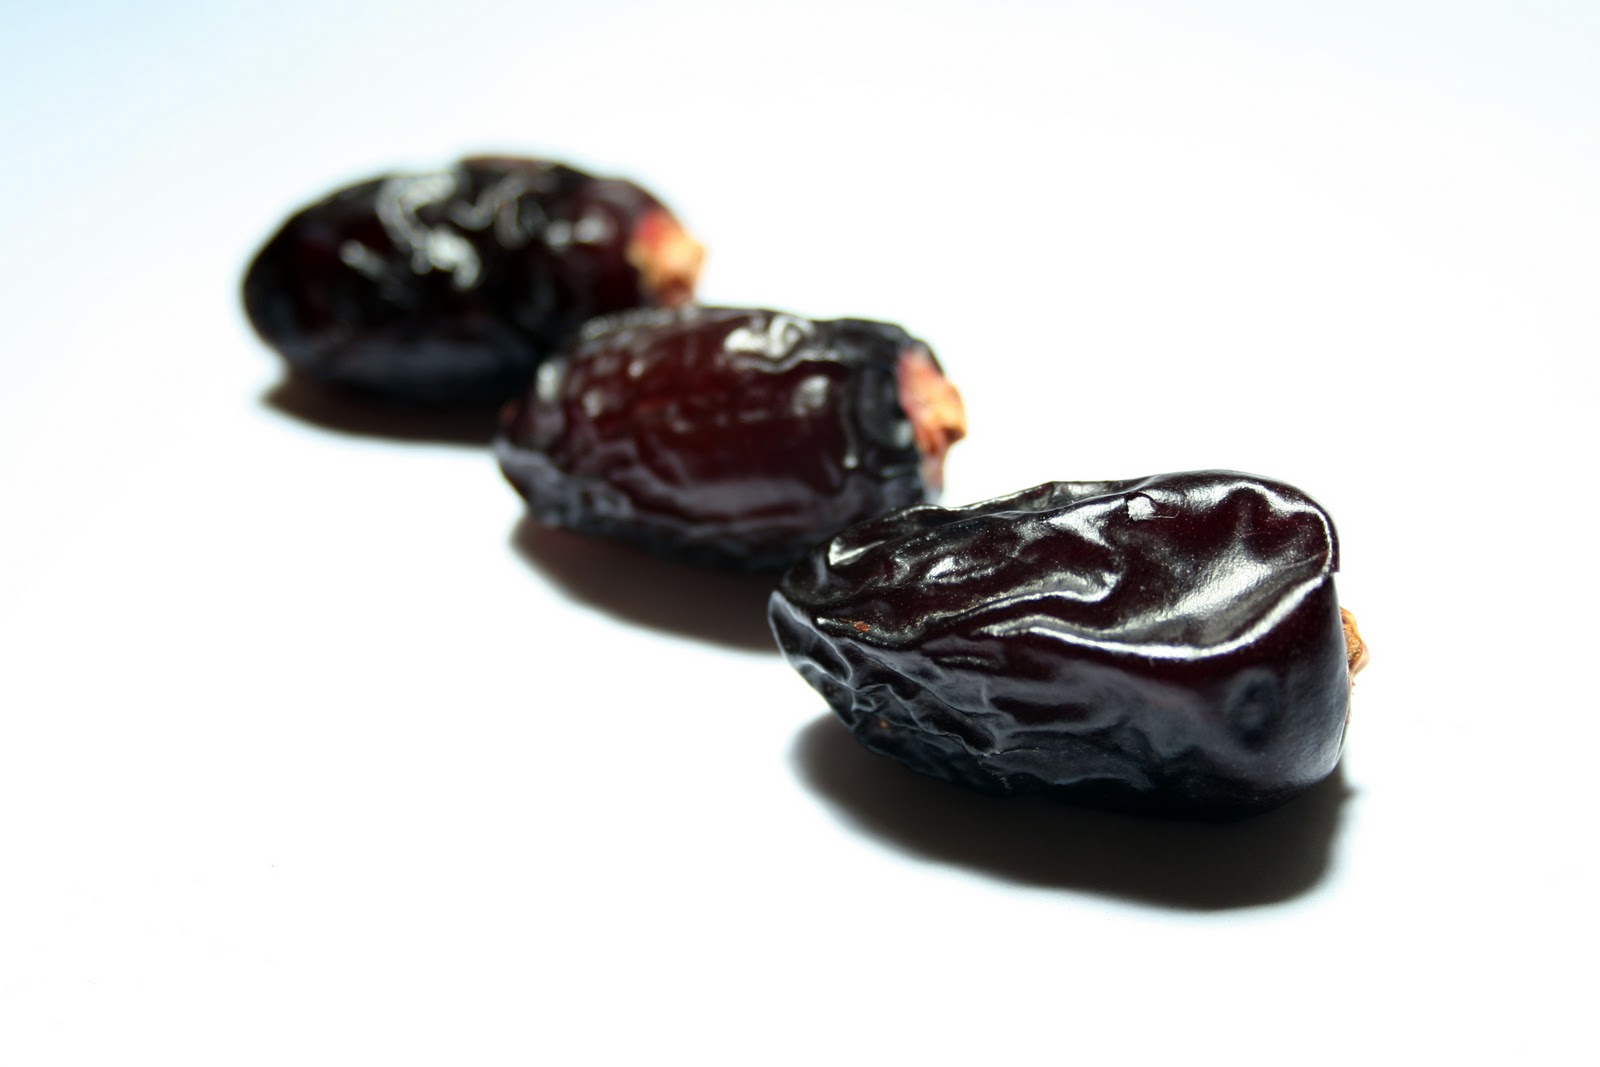 Ramalan dates fruit